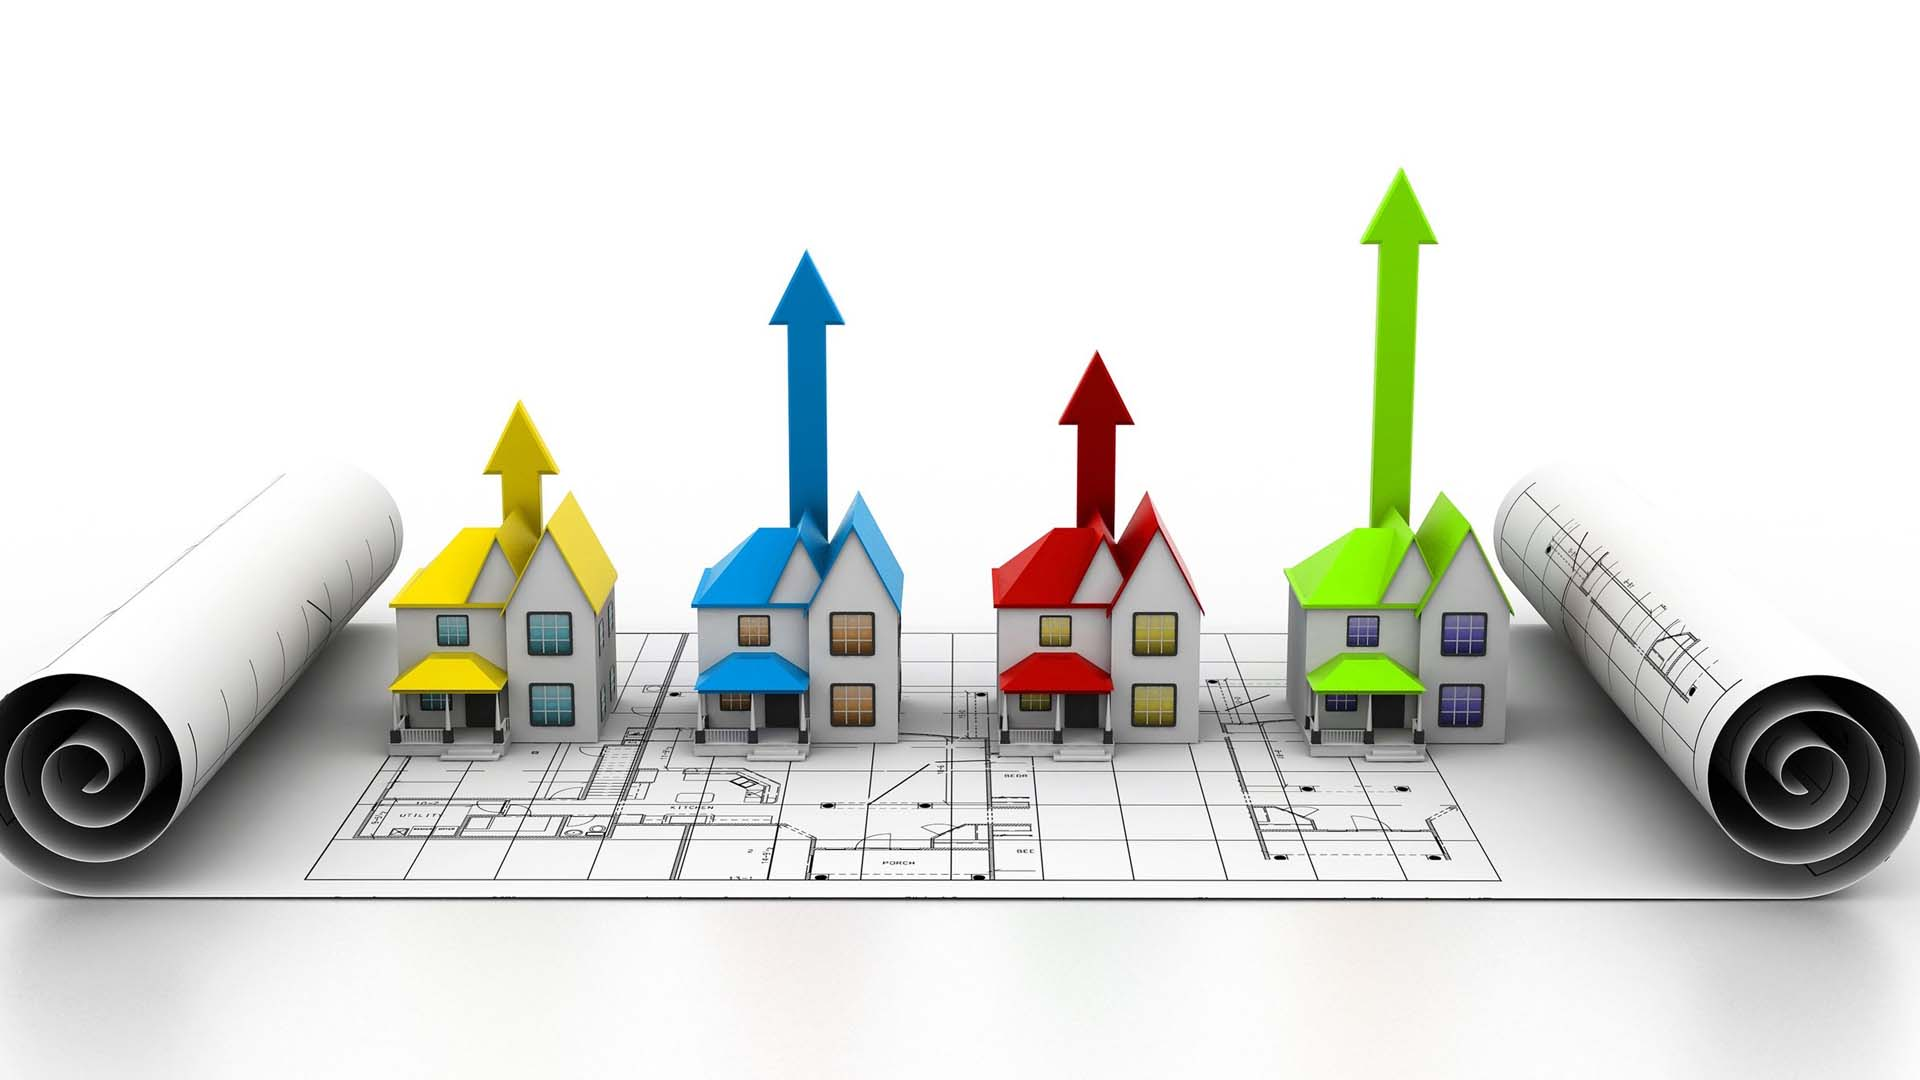 Is Real Estate Slow Down A Myth Or Truth?